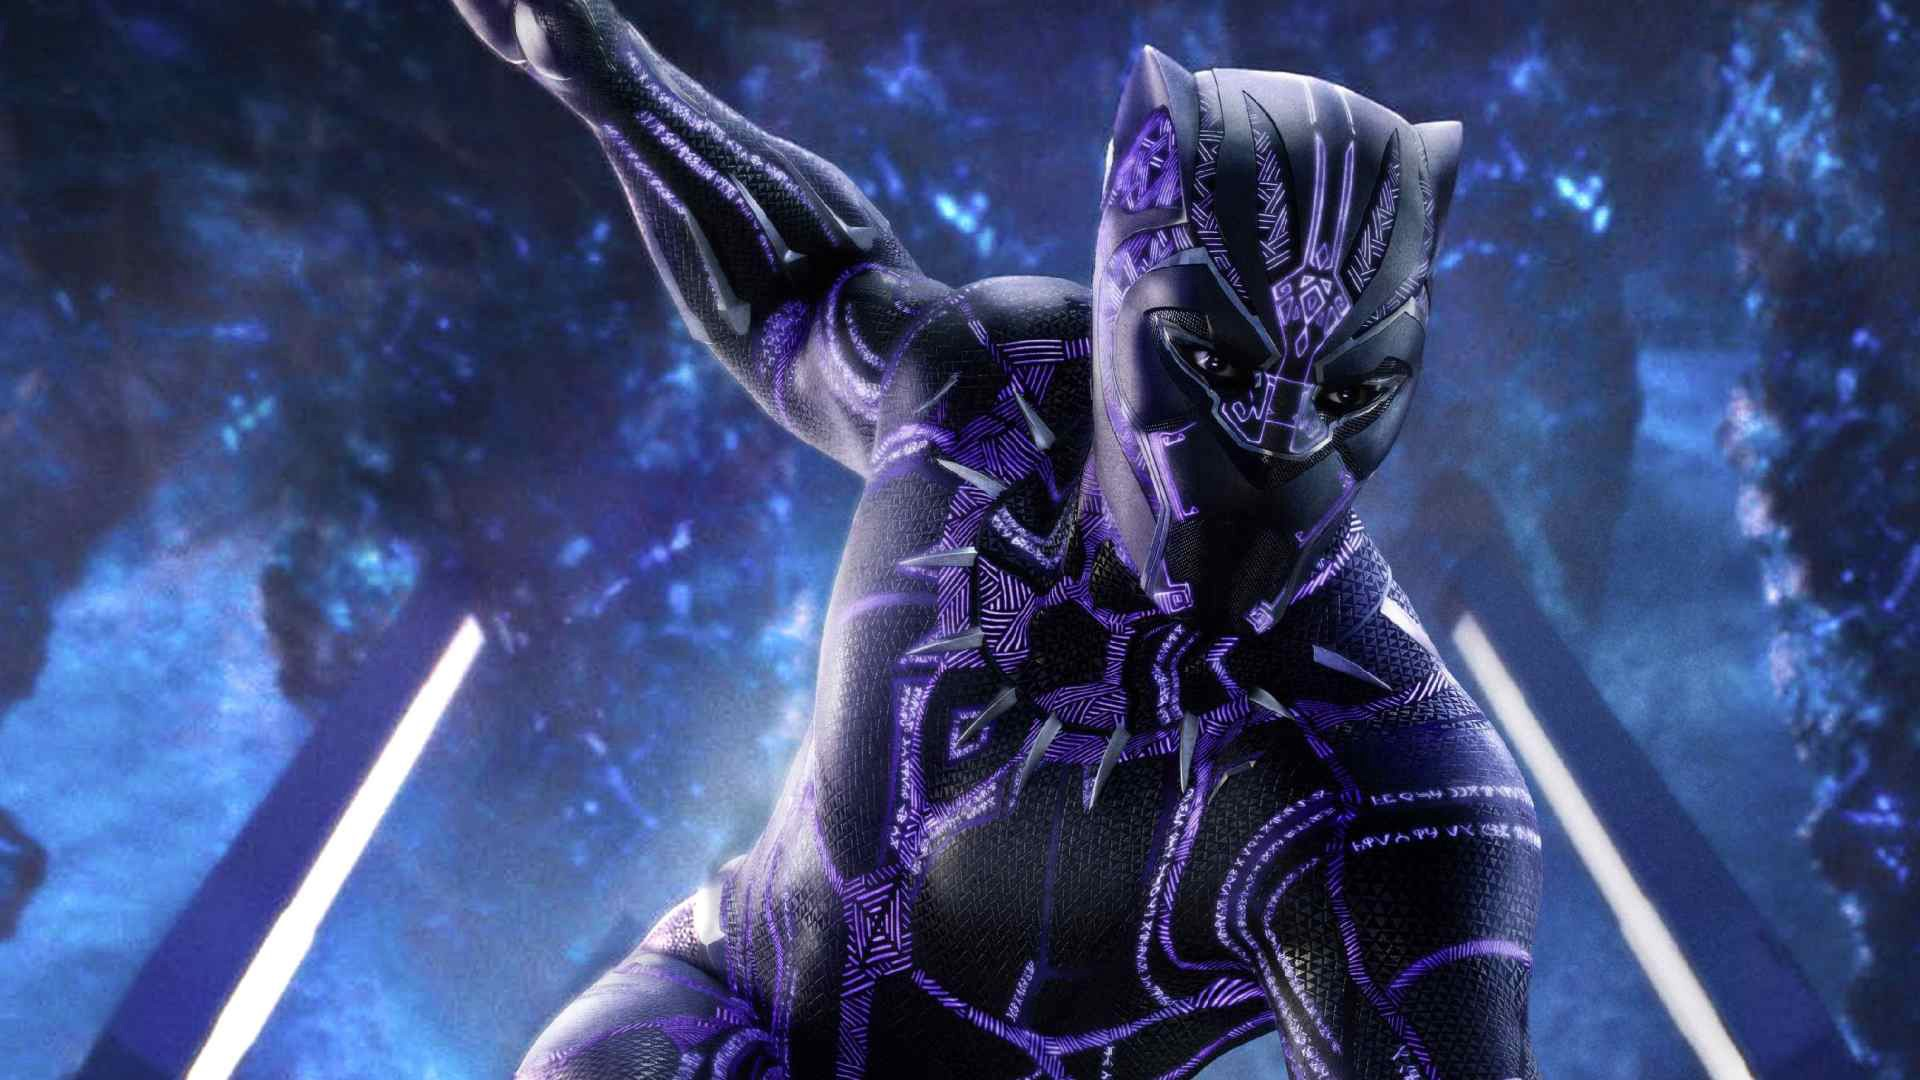 Black Panther Wallpaper HD. You can download many types of ...